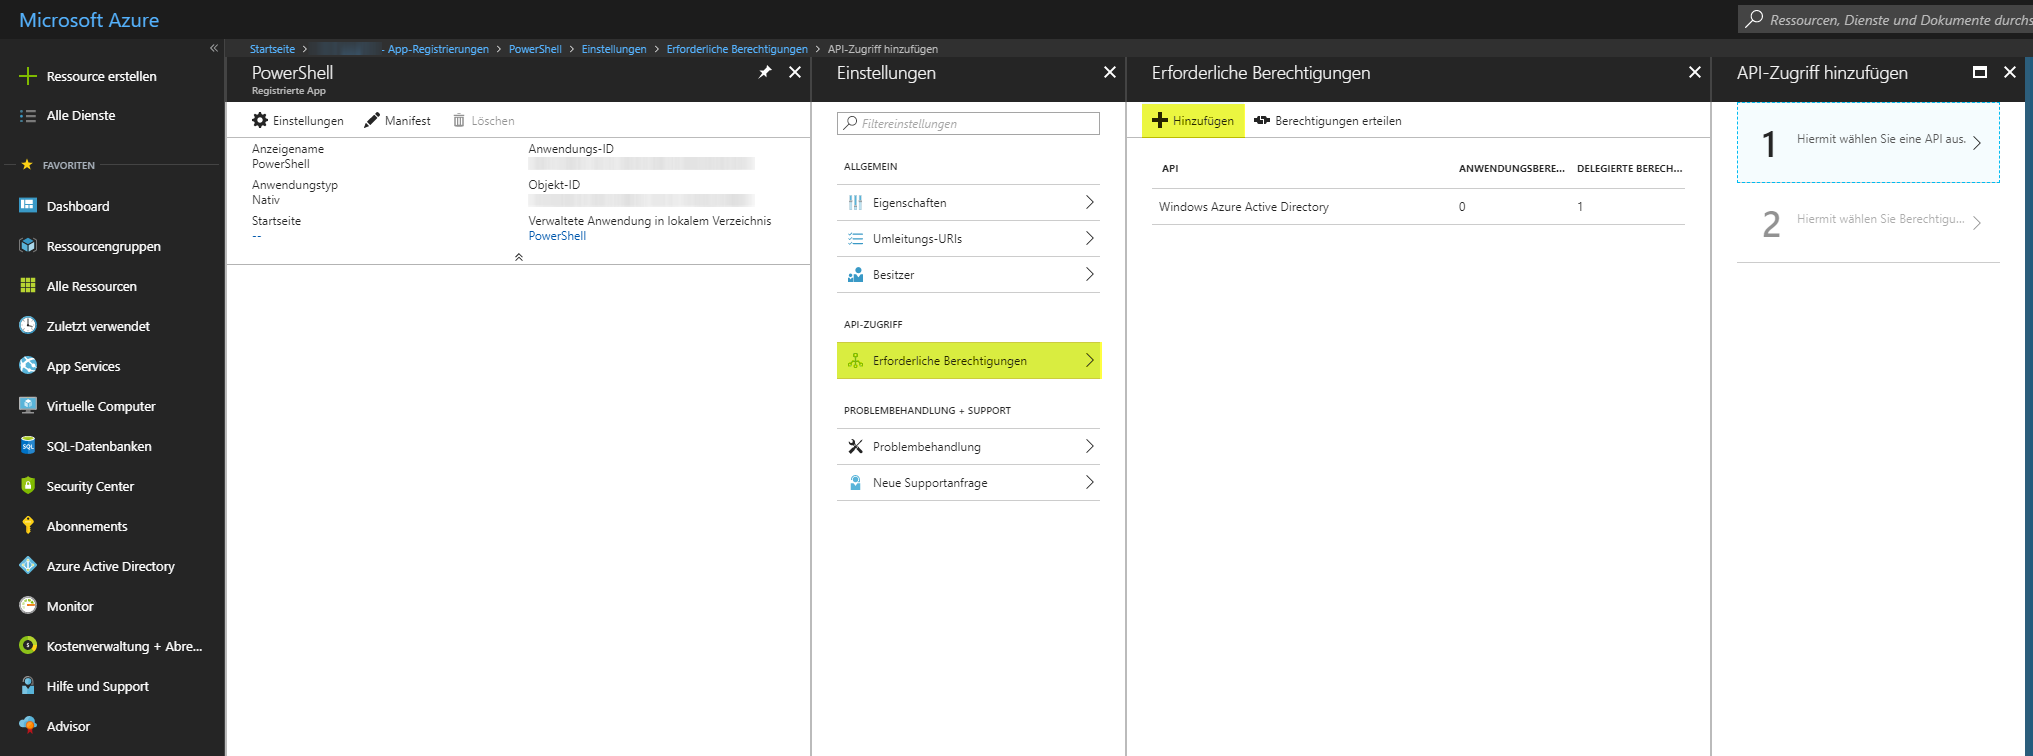 HOWTO] Send Mails and Create Calendar Entries with the Office365